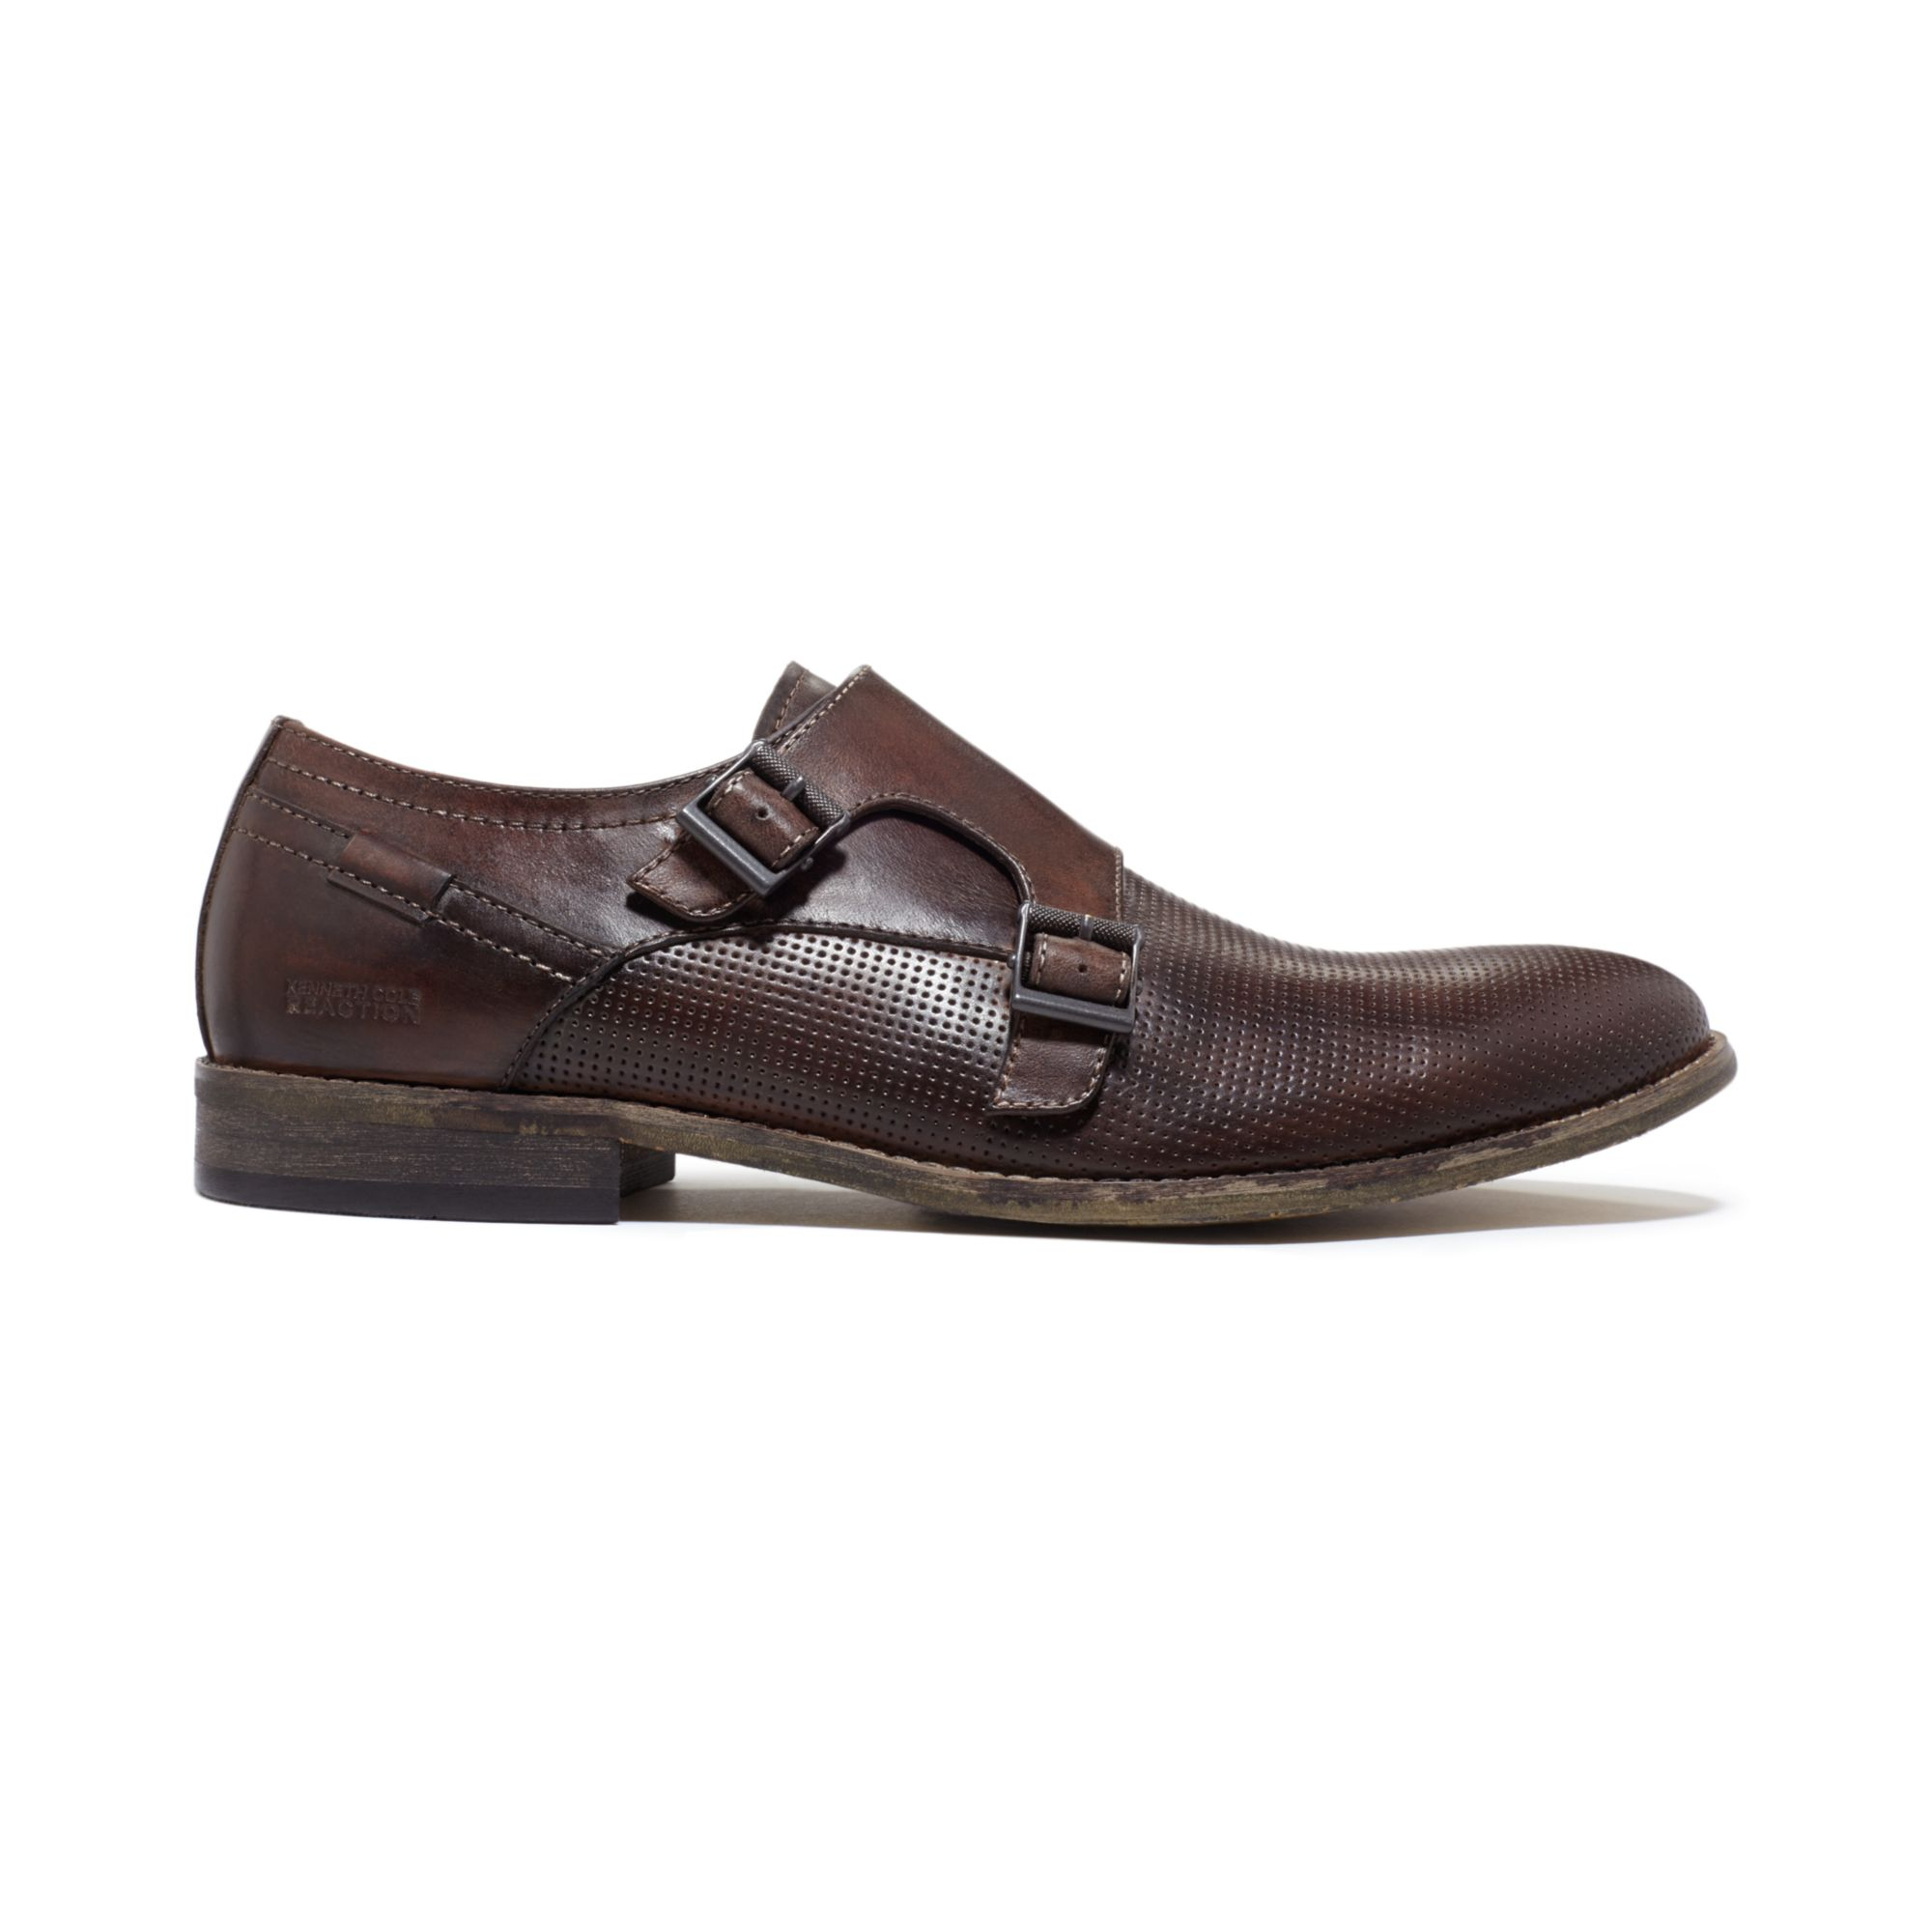 Kenneth Cole Reaction Shoes Canada